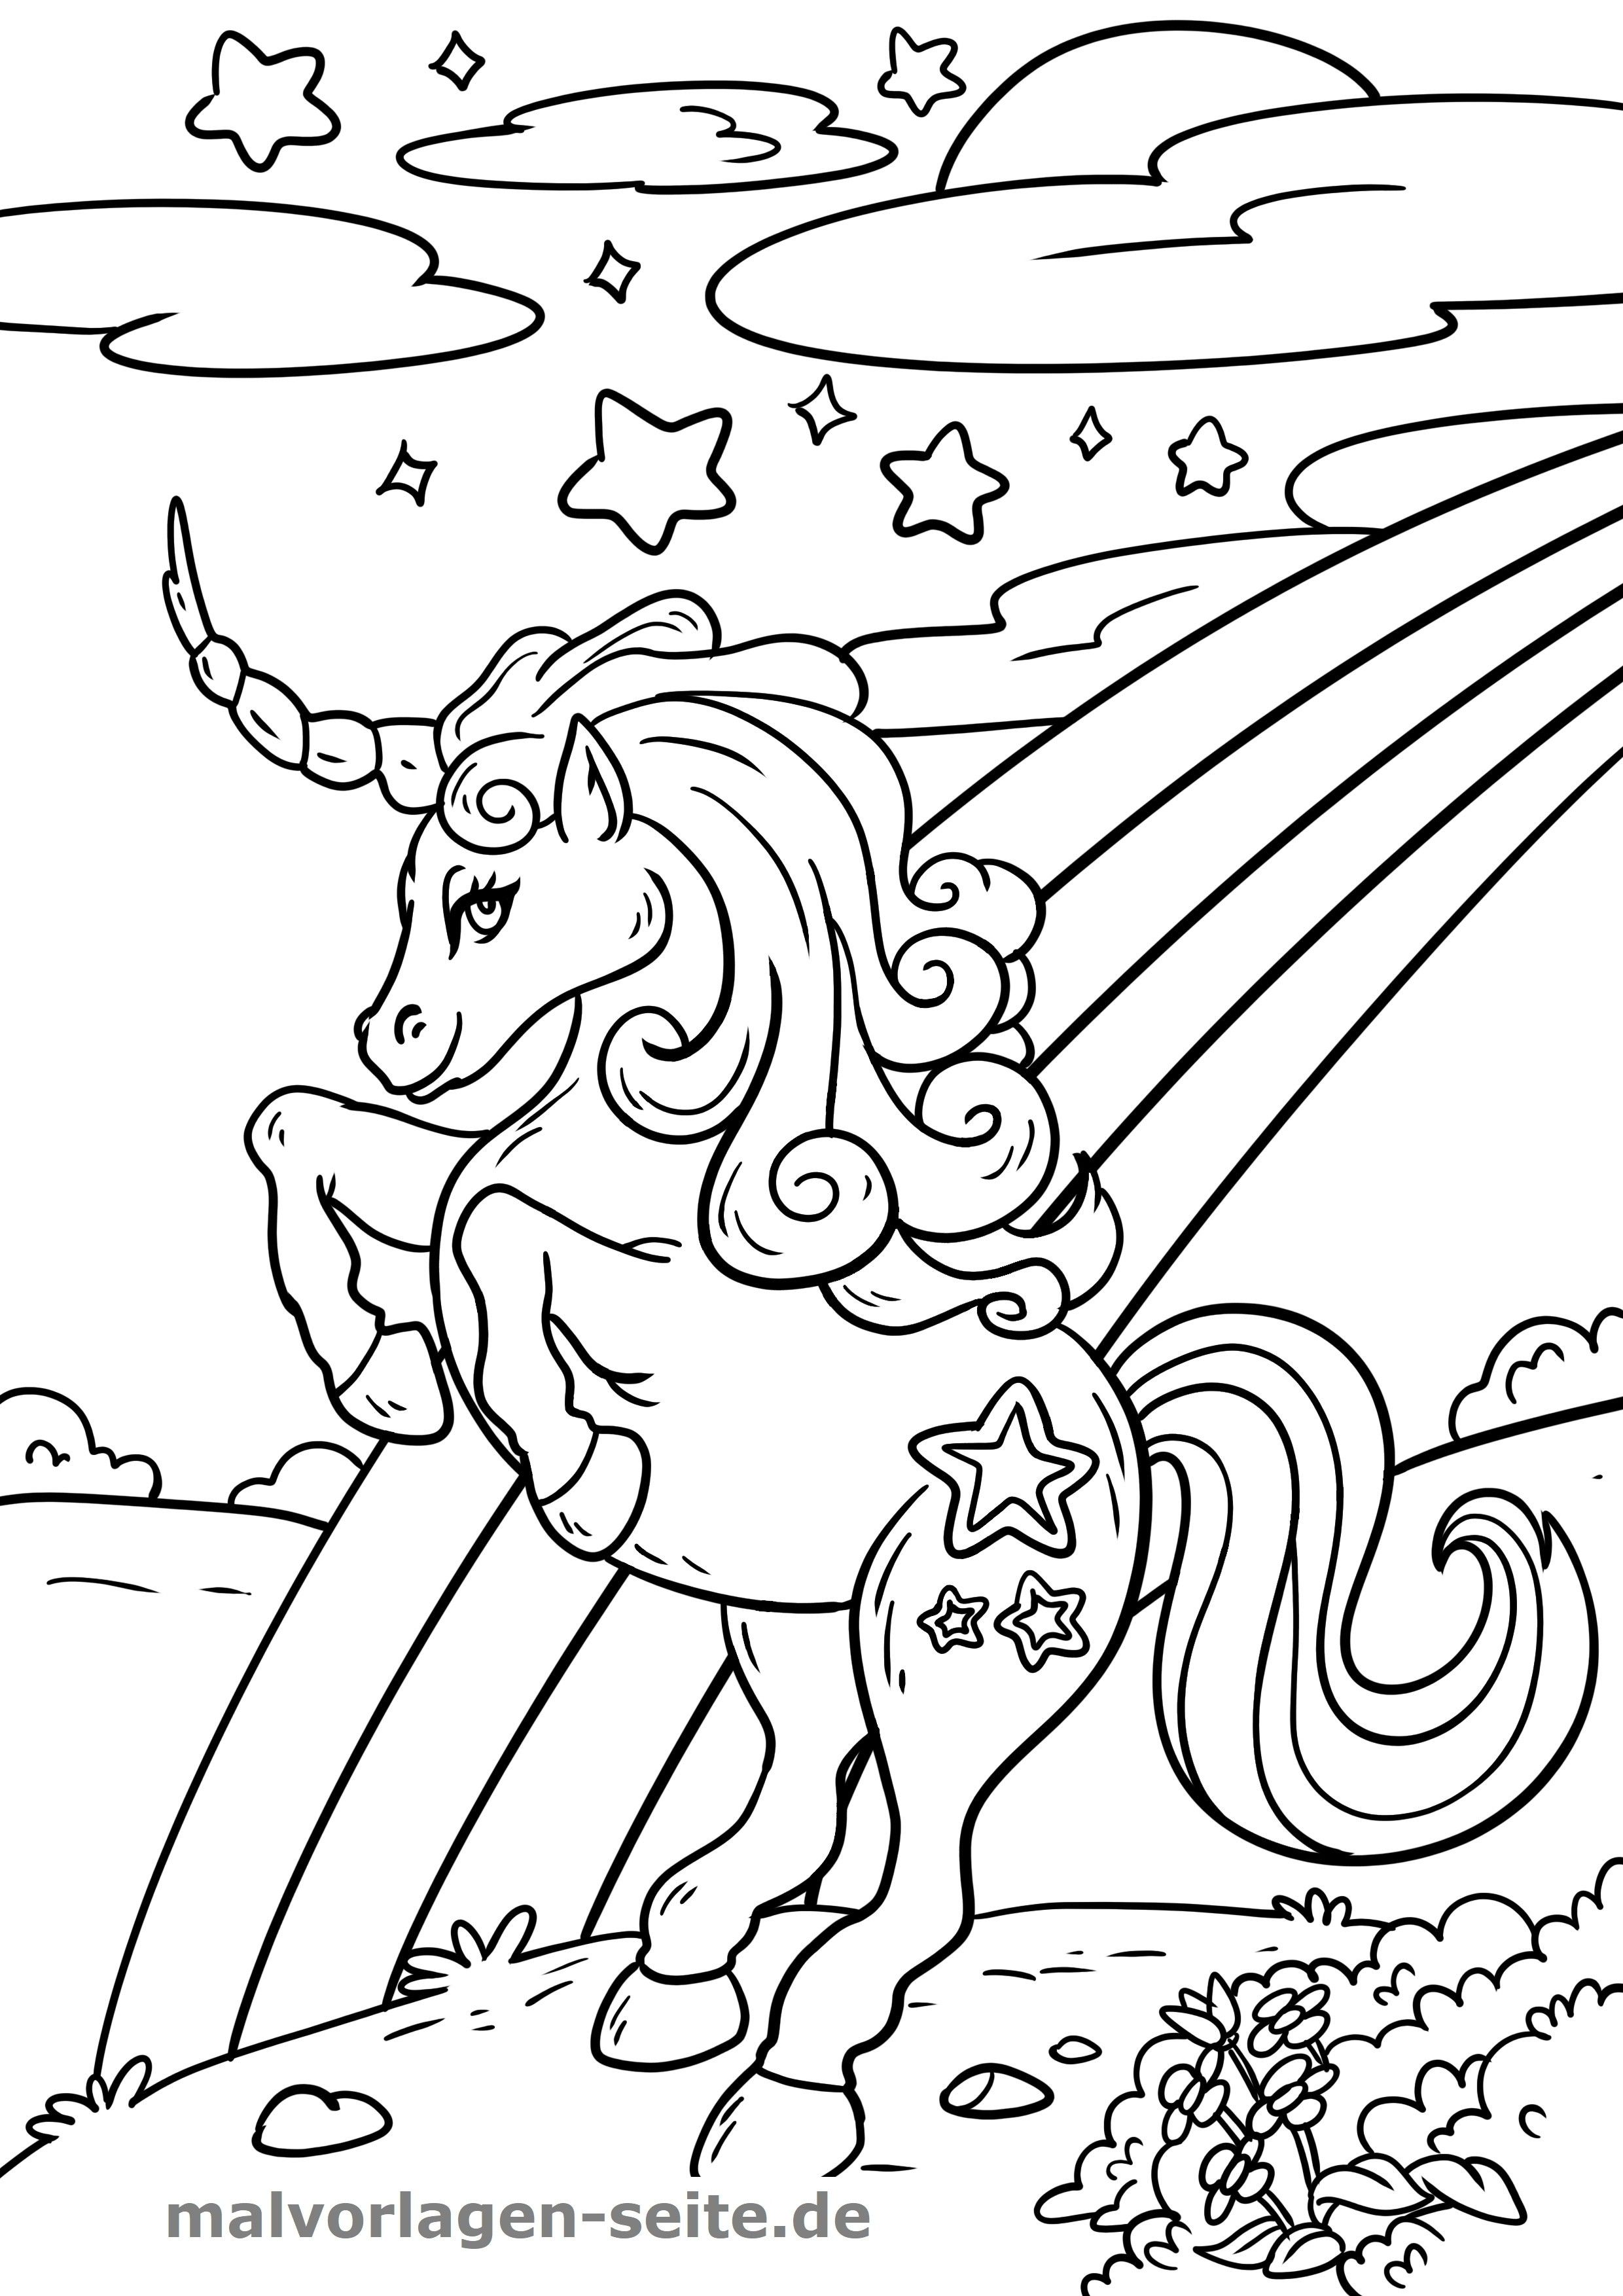 Neu Malvorlagen Kostenlos Einhorn Coloring Pages Coloring Book Pages Colorful Pictures